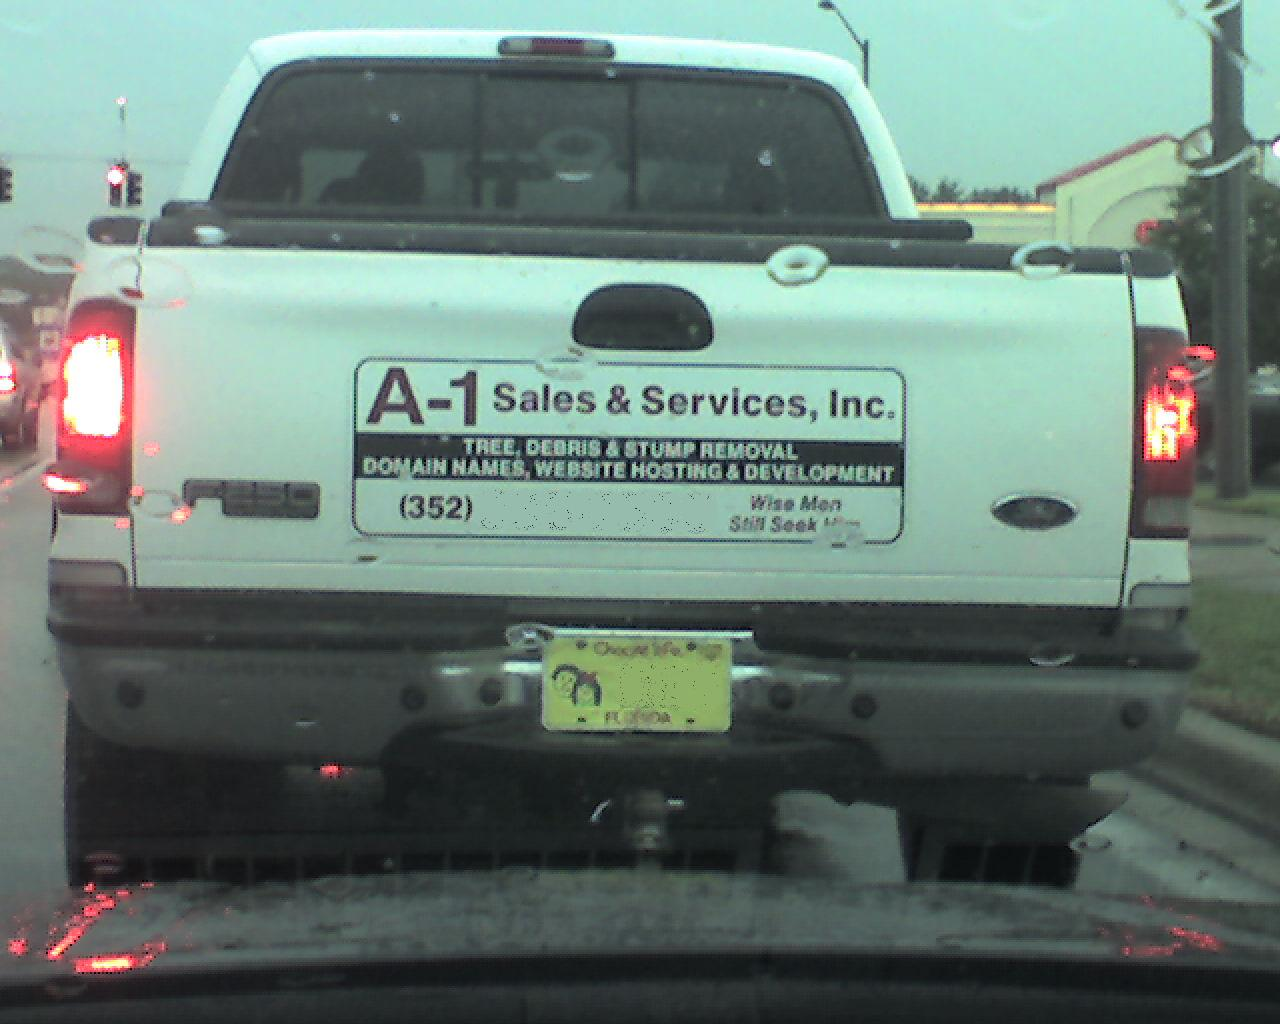 magnet sign on truck: